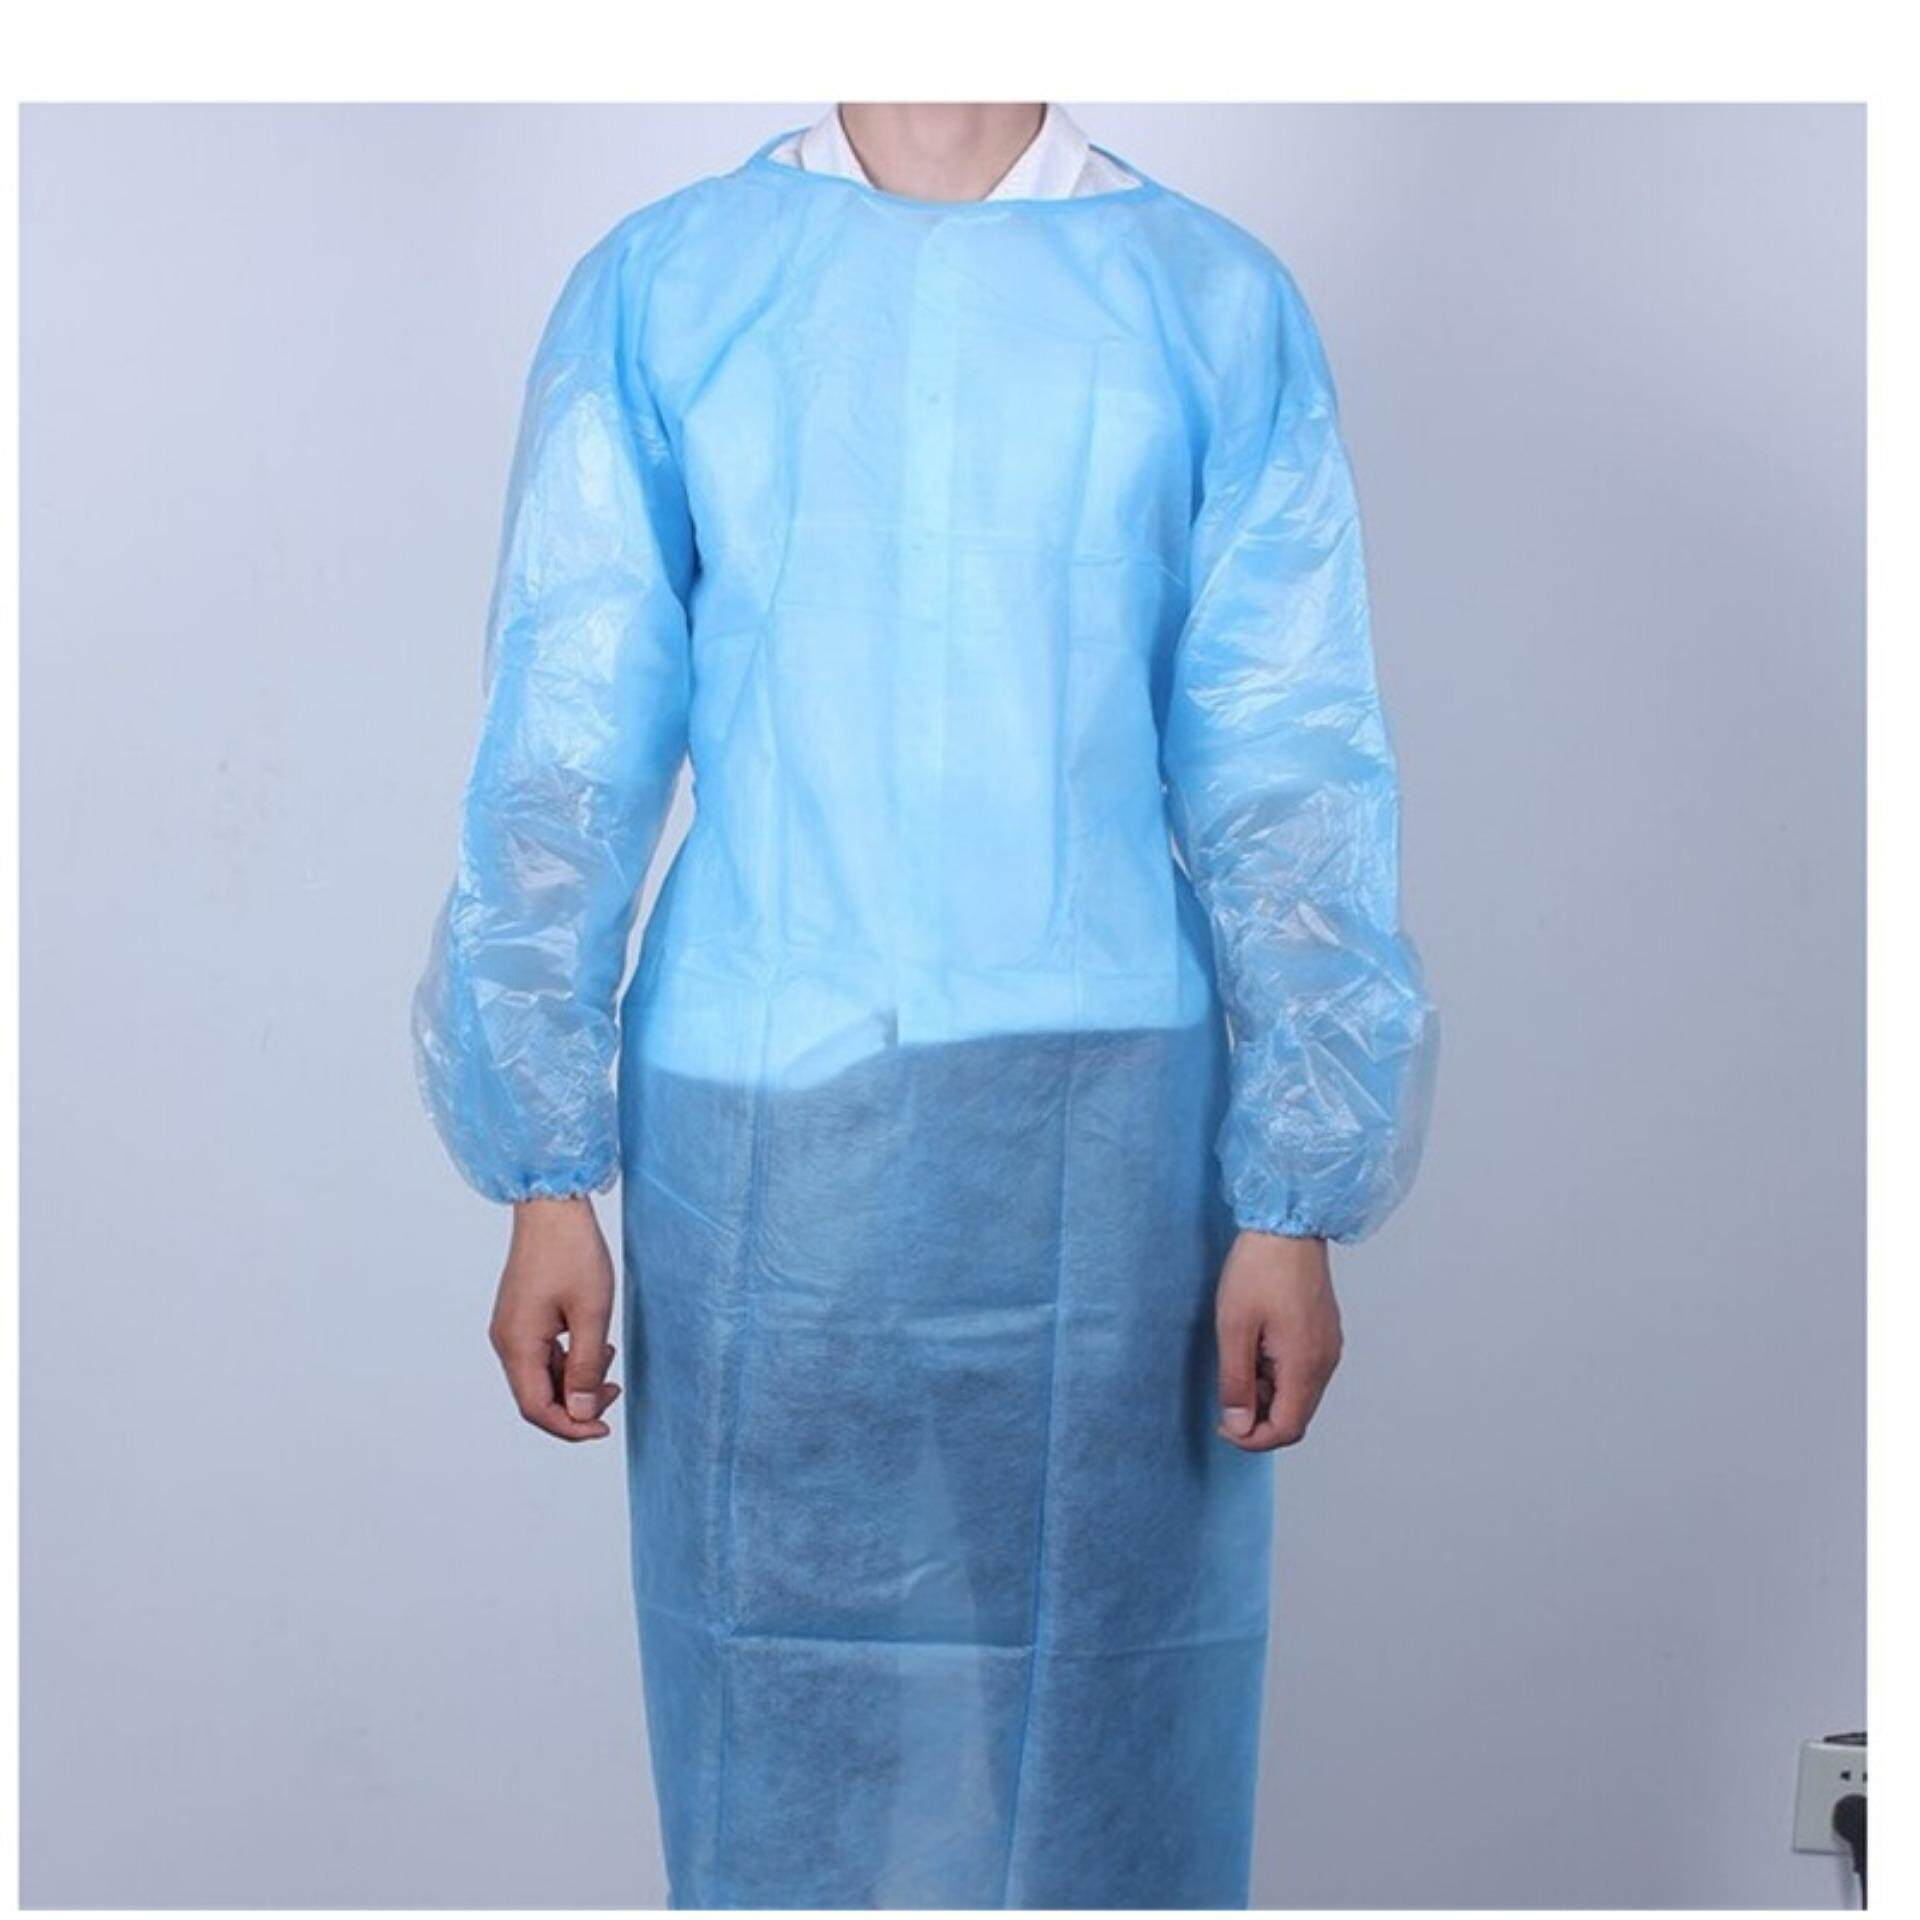 Disposable Medical Clean Laboratory Isolation Cover Gown Surgical Clothes Blue